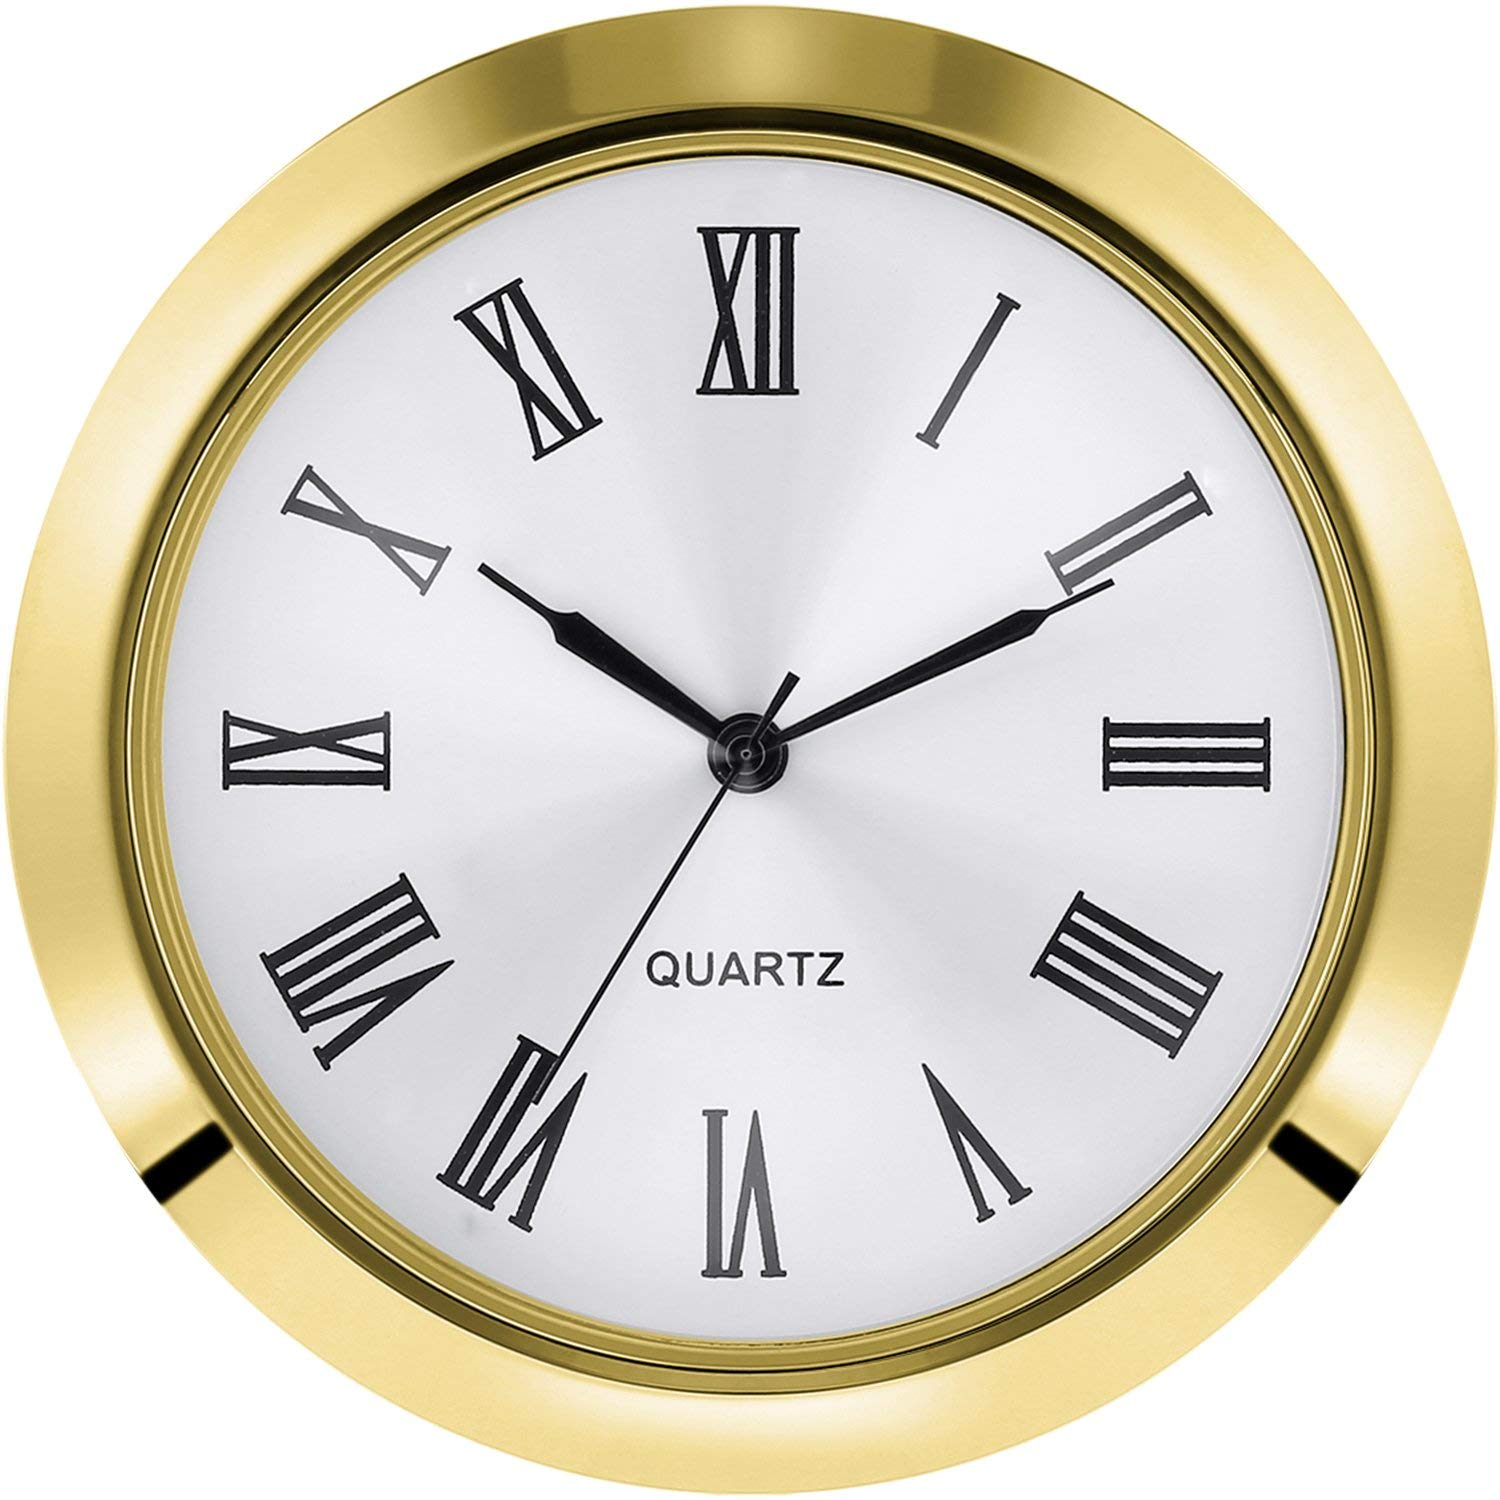 Hicarer 2-1/8 Inch (55 mm) Quartz Clock Fit-up/Insert, Fit Diameter 1-7/8 to 2 Inch (48-50 mm) Hole, Zinc-Alloy Metal Case, Roman Numeral (Gold)